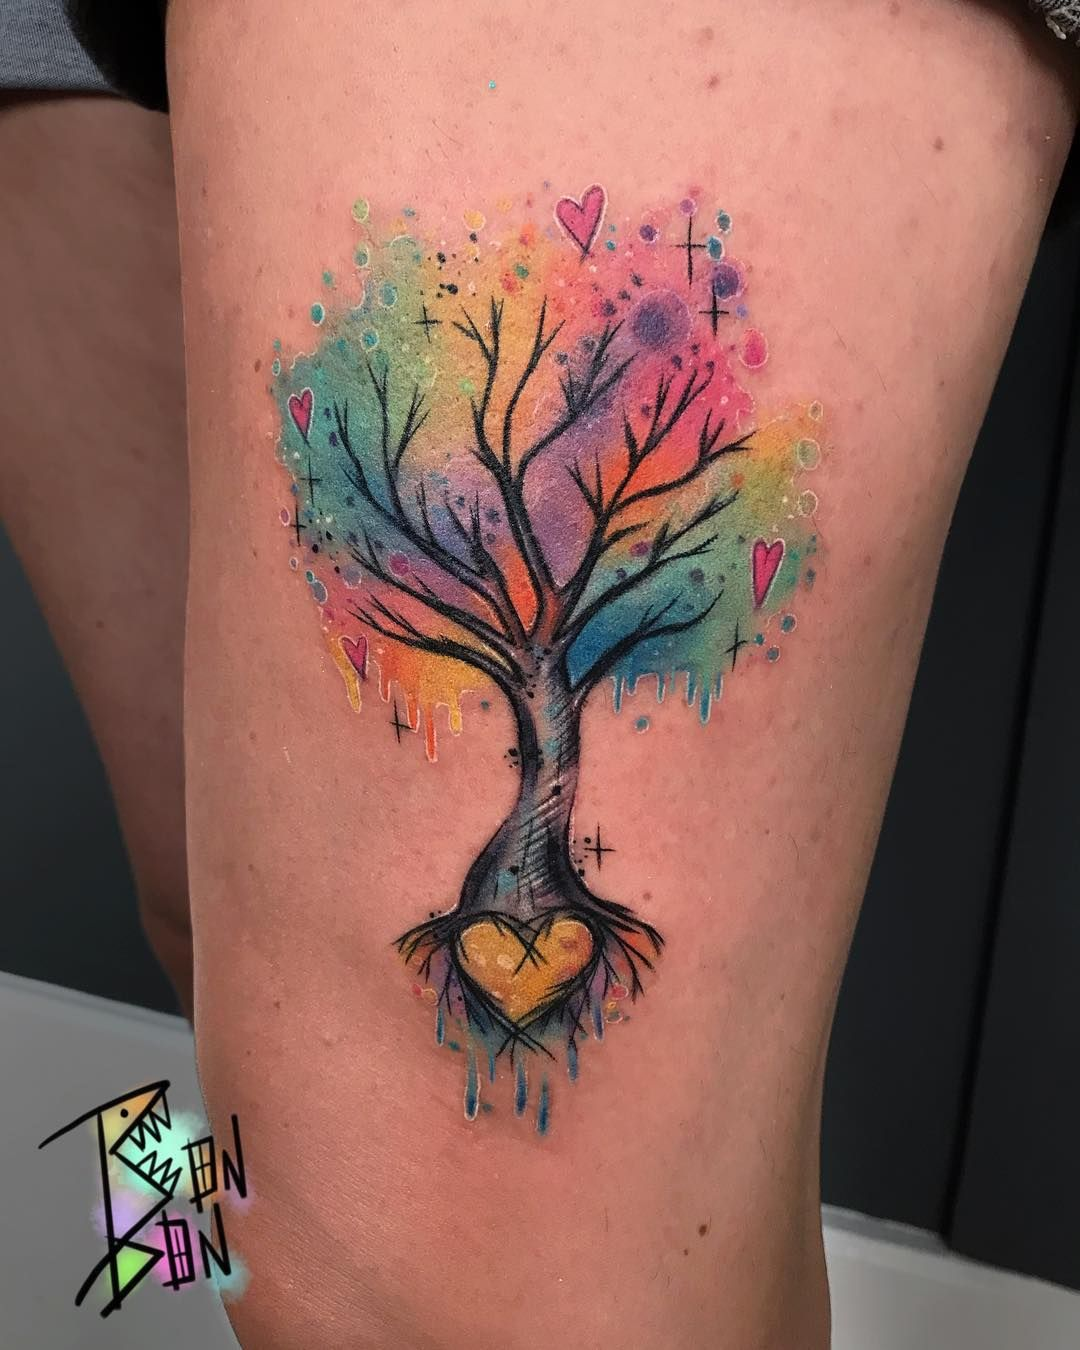 "BONITA CARUANA on Instagram: ""Family tree for Katie 🌈💖🌳 - - - #bonbonbizarre #houseofwolves #houseofwolvestattoo #rainbow #tree"""